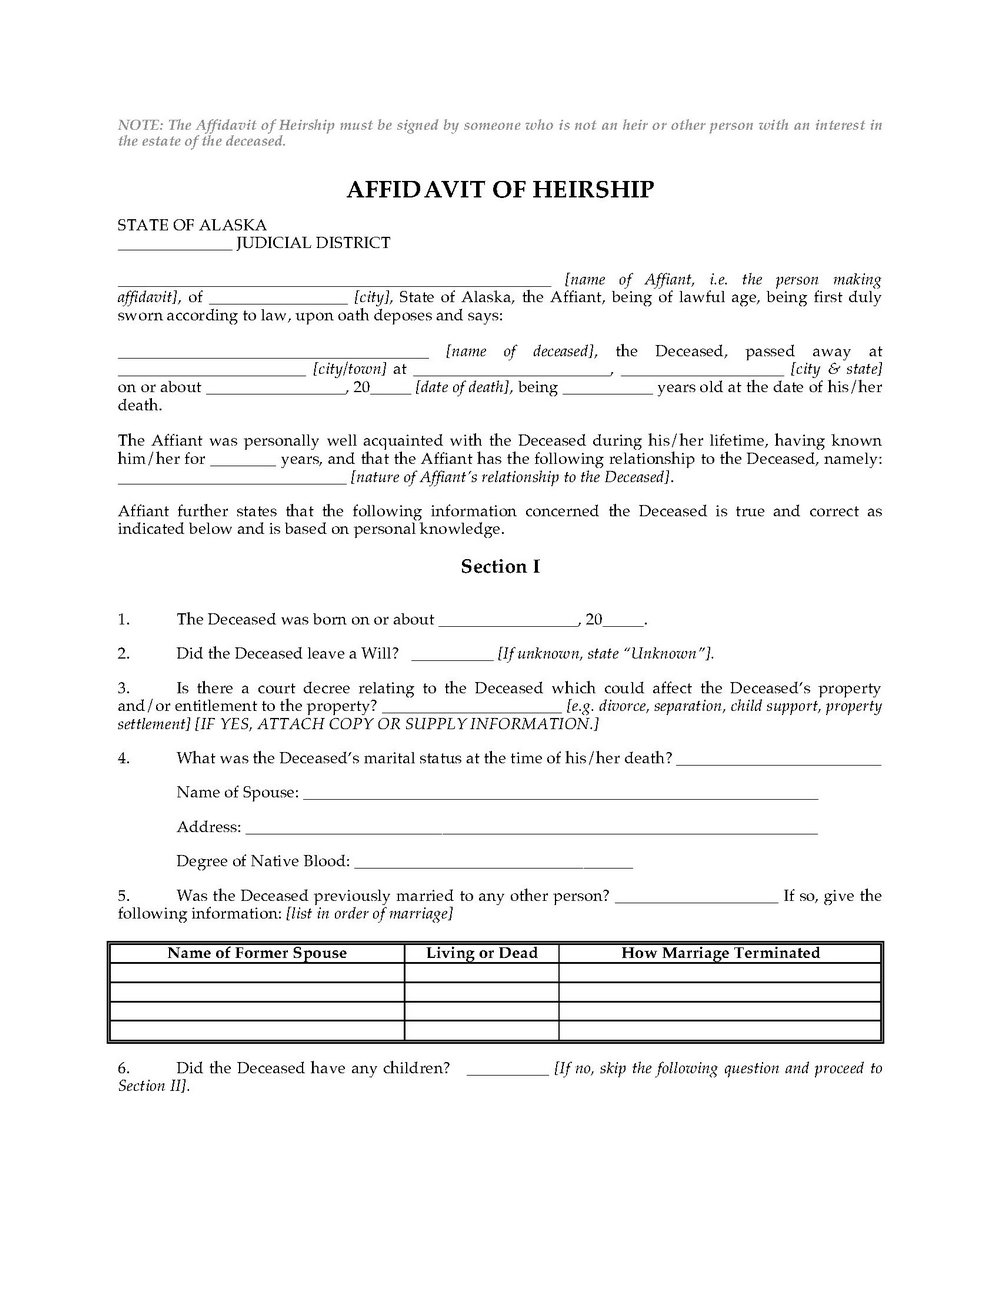 Affidavit Of Heirship Form Louisiana